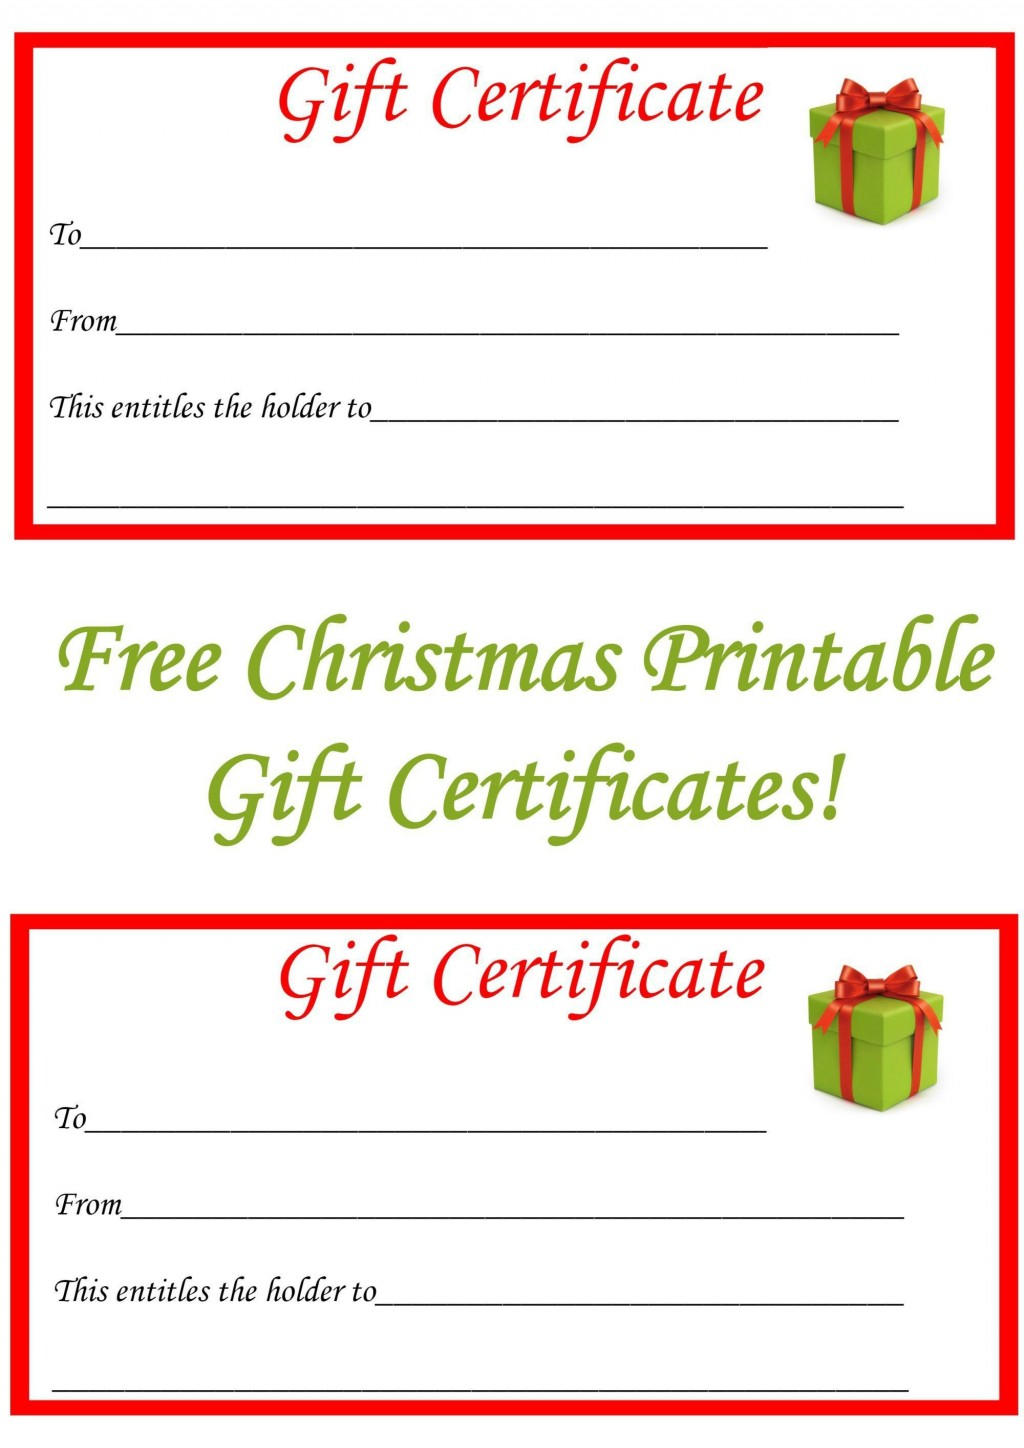 002 Rare Free Silent Auction Gift Certificate Template Idea Large